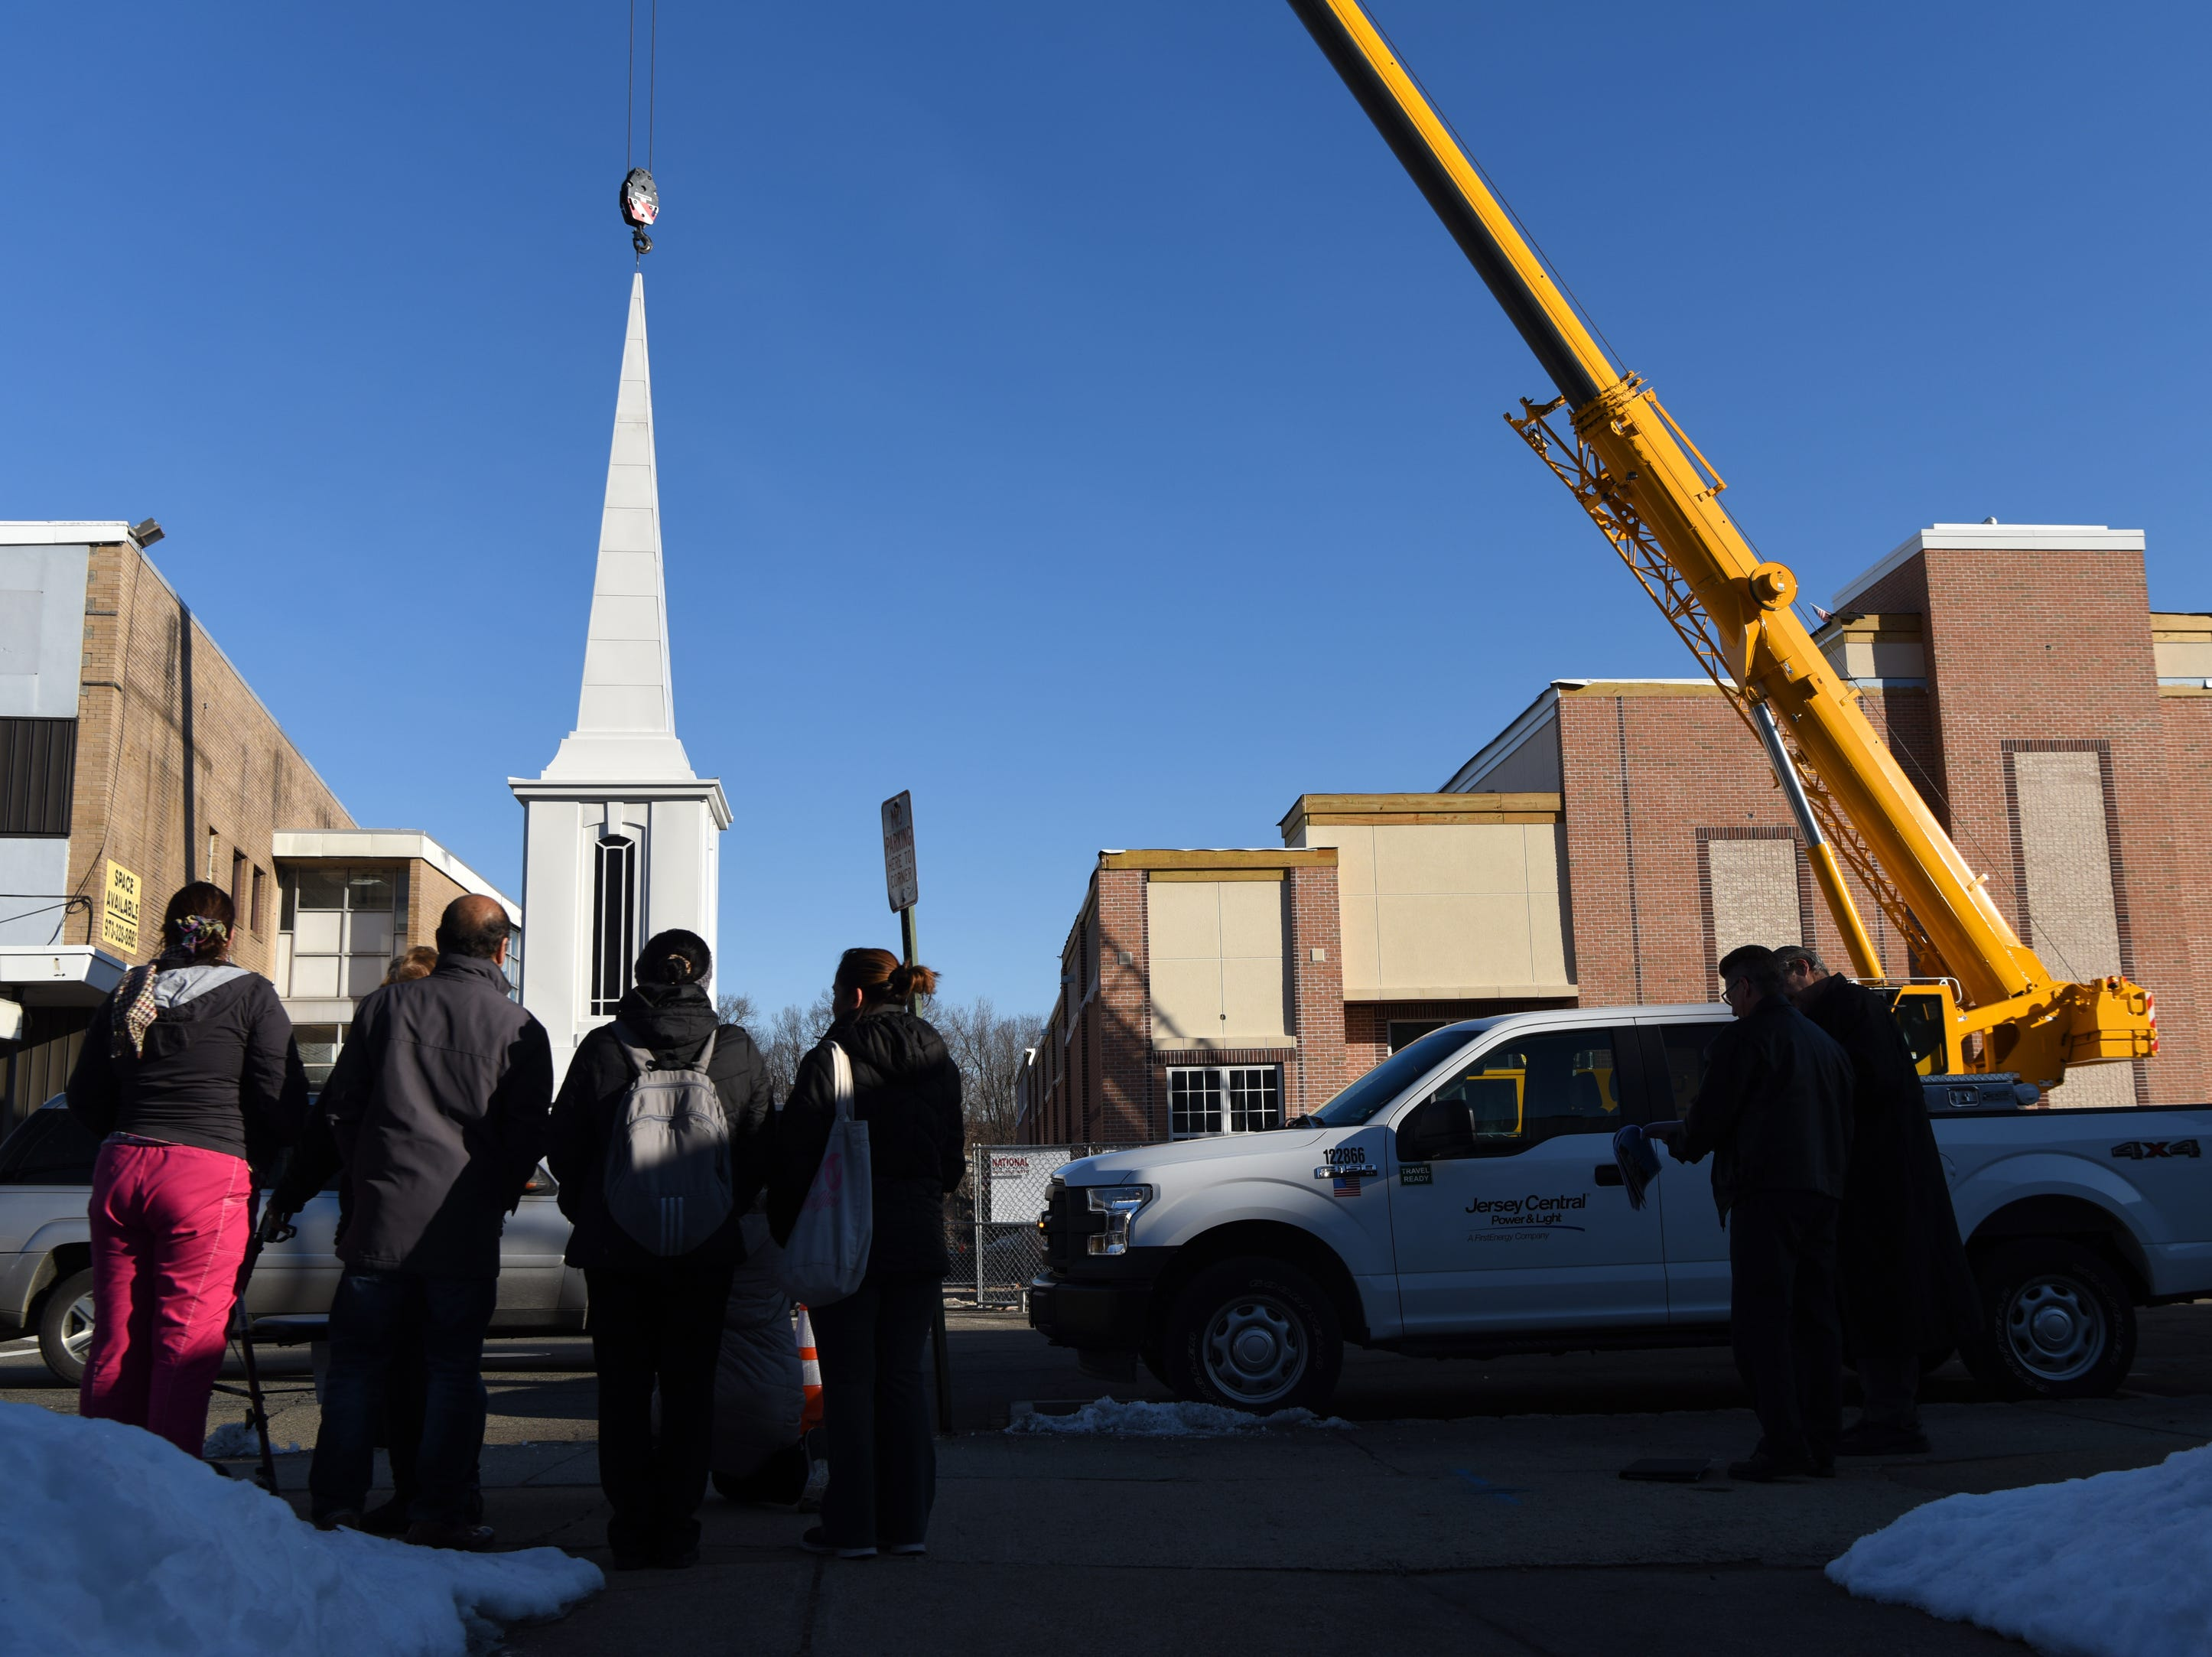 A crane is used to raise a steeple onto the The Church of Jesus Christ of Later-day Saints in Dover on Wednesday, March 13, 2019.